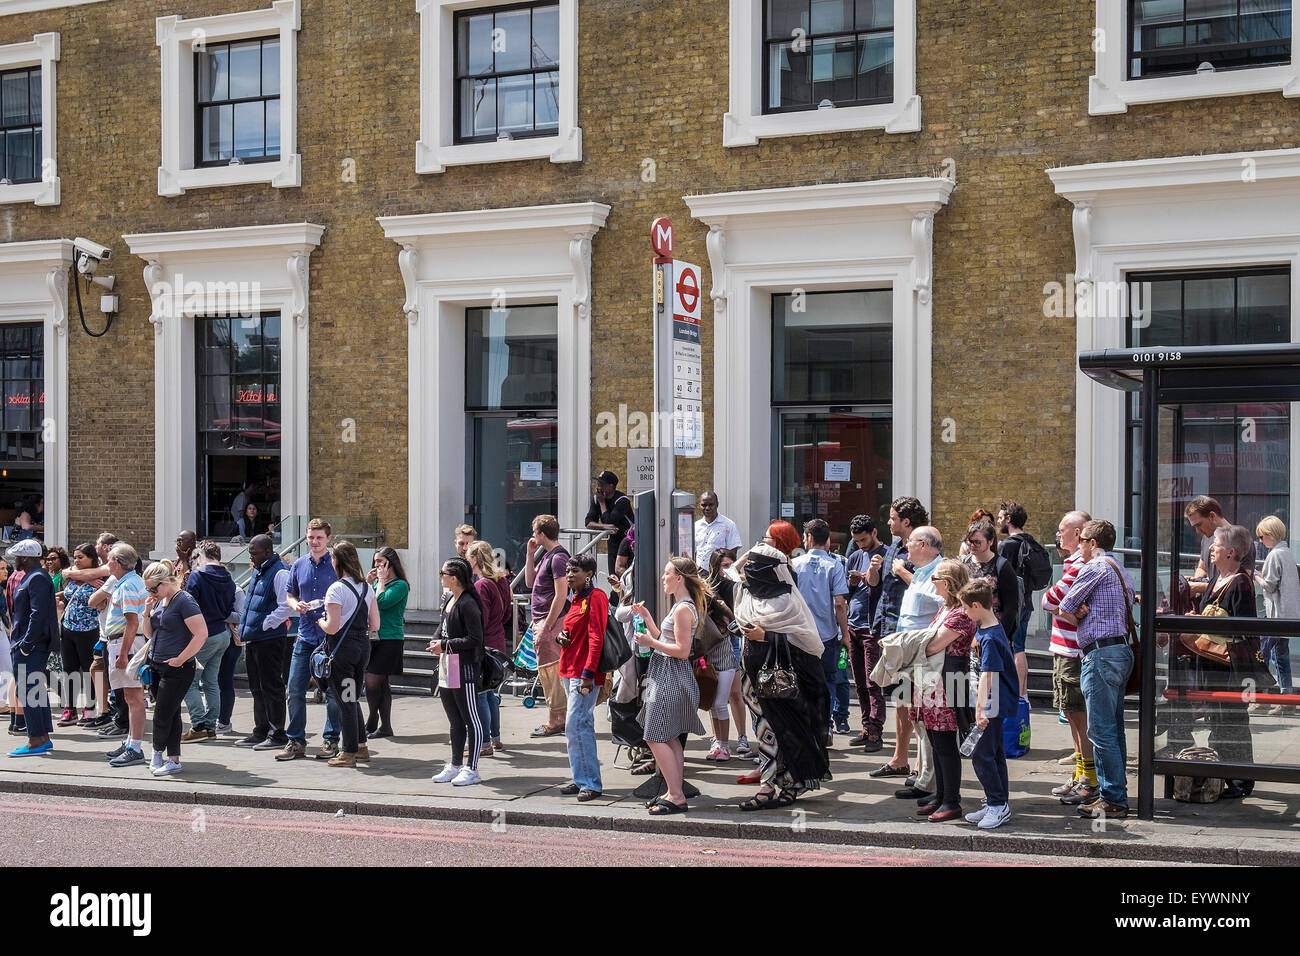 People waiting for a bus in Southwalk, London. Stock Photo